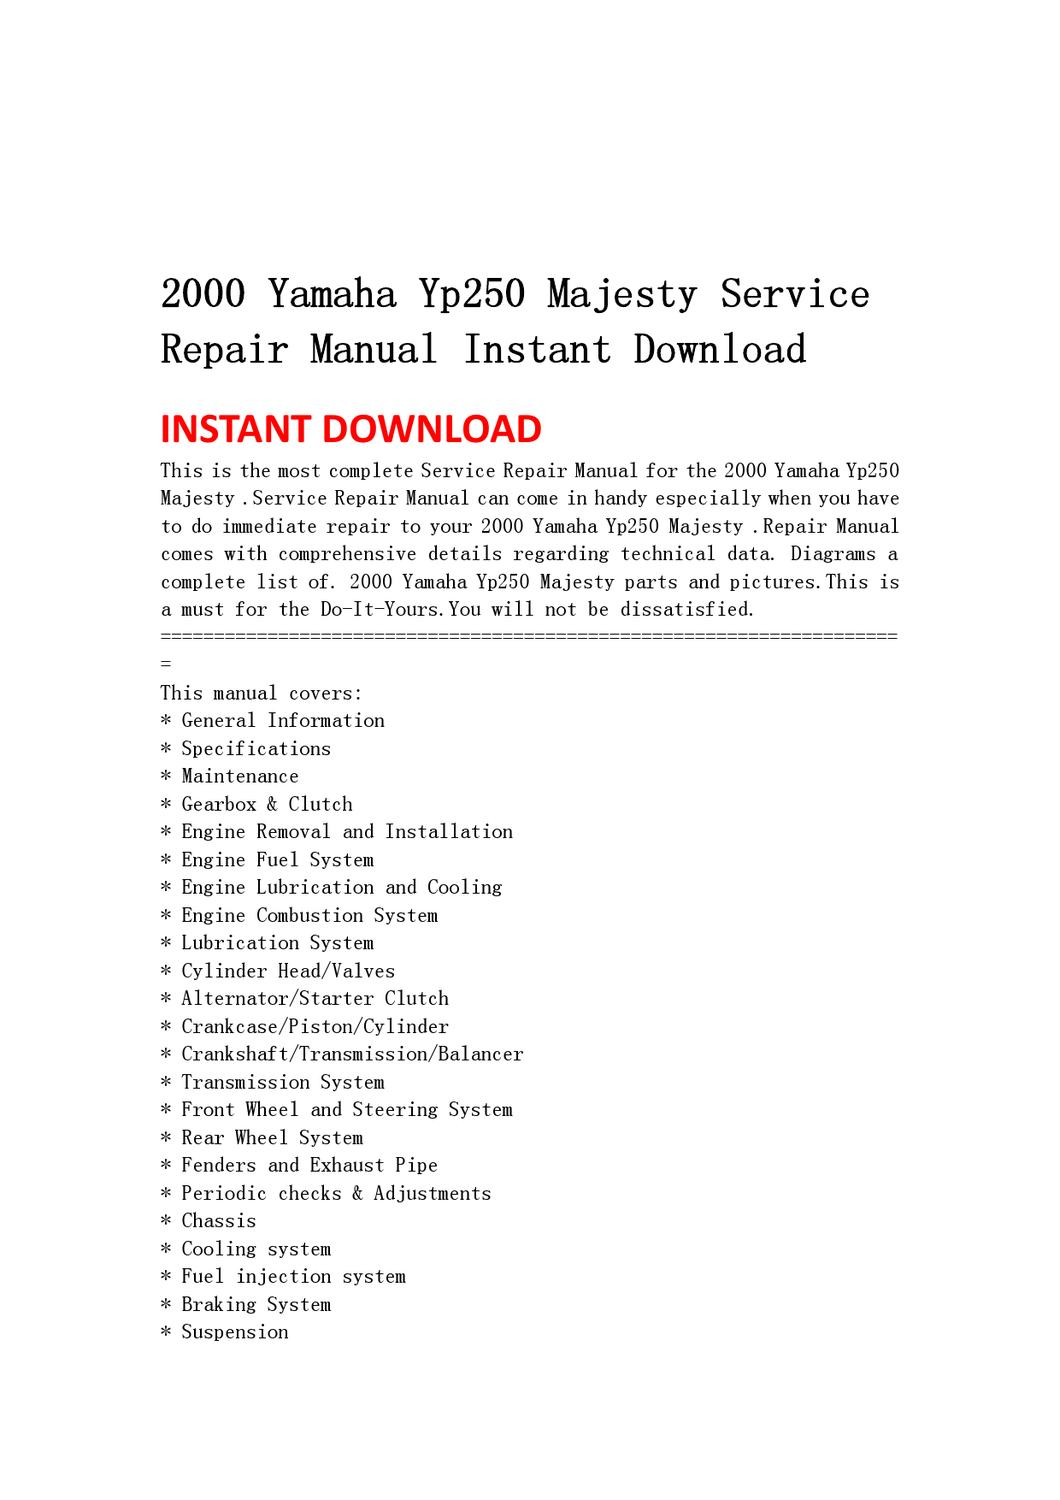 2000 yamaha yp250 majesty service repair manual instant download by home  wiring diagrams 2000 yamaha yp250